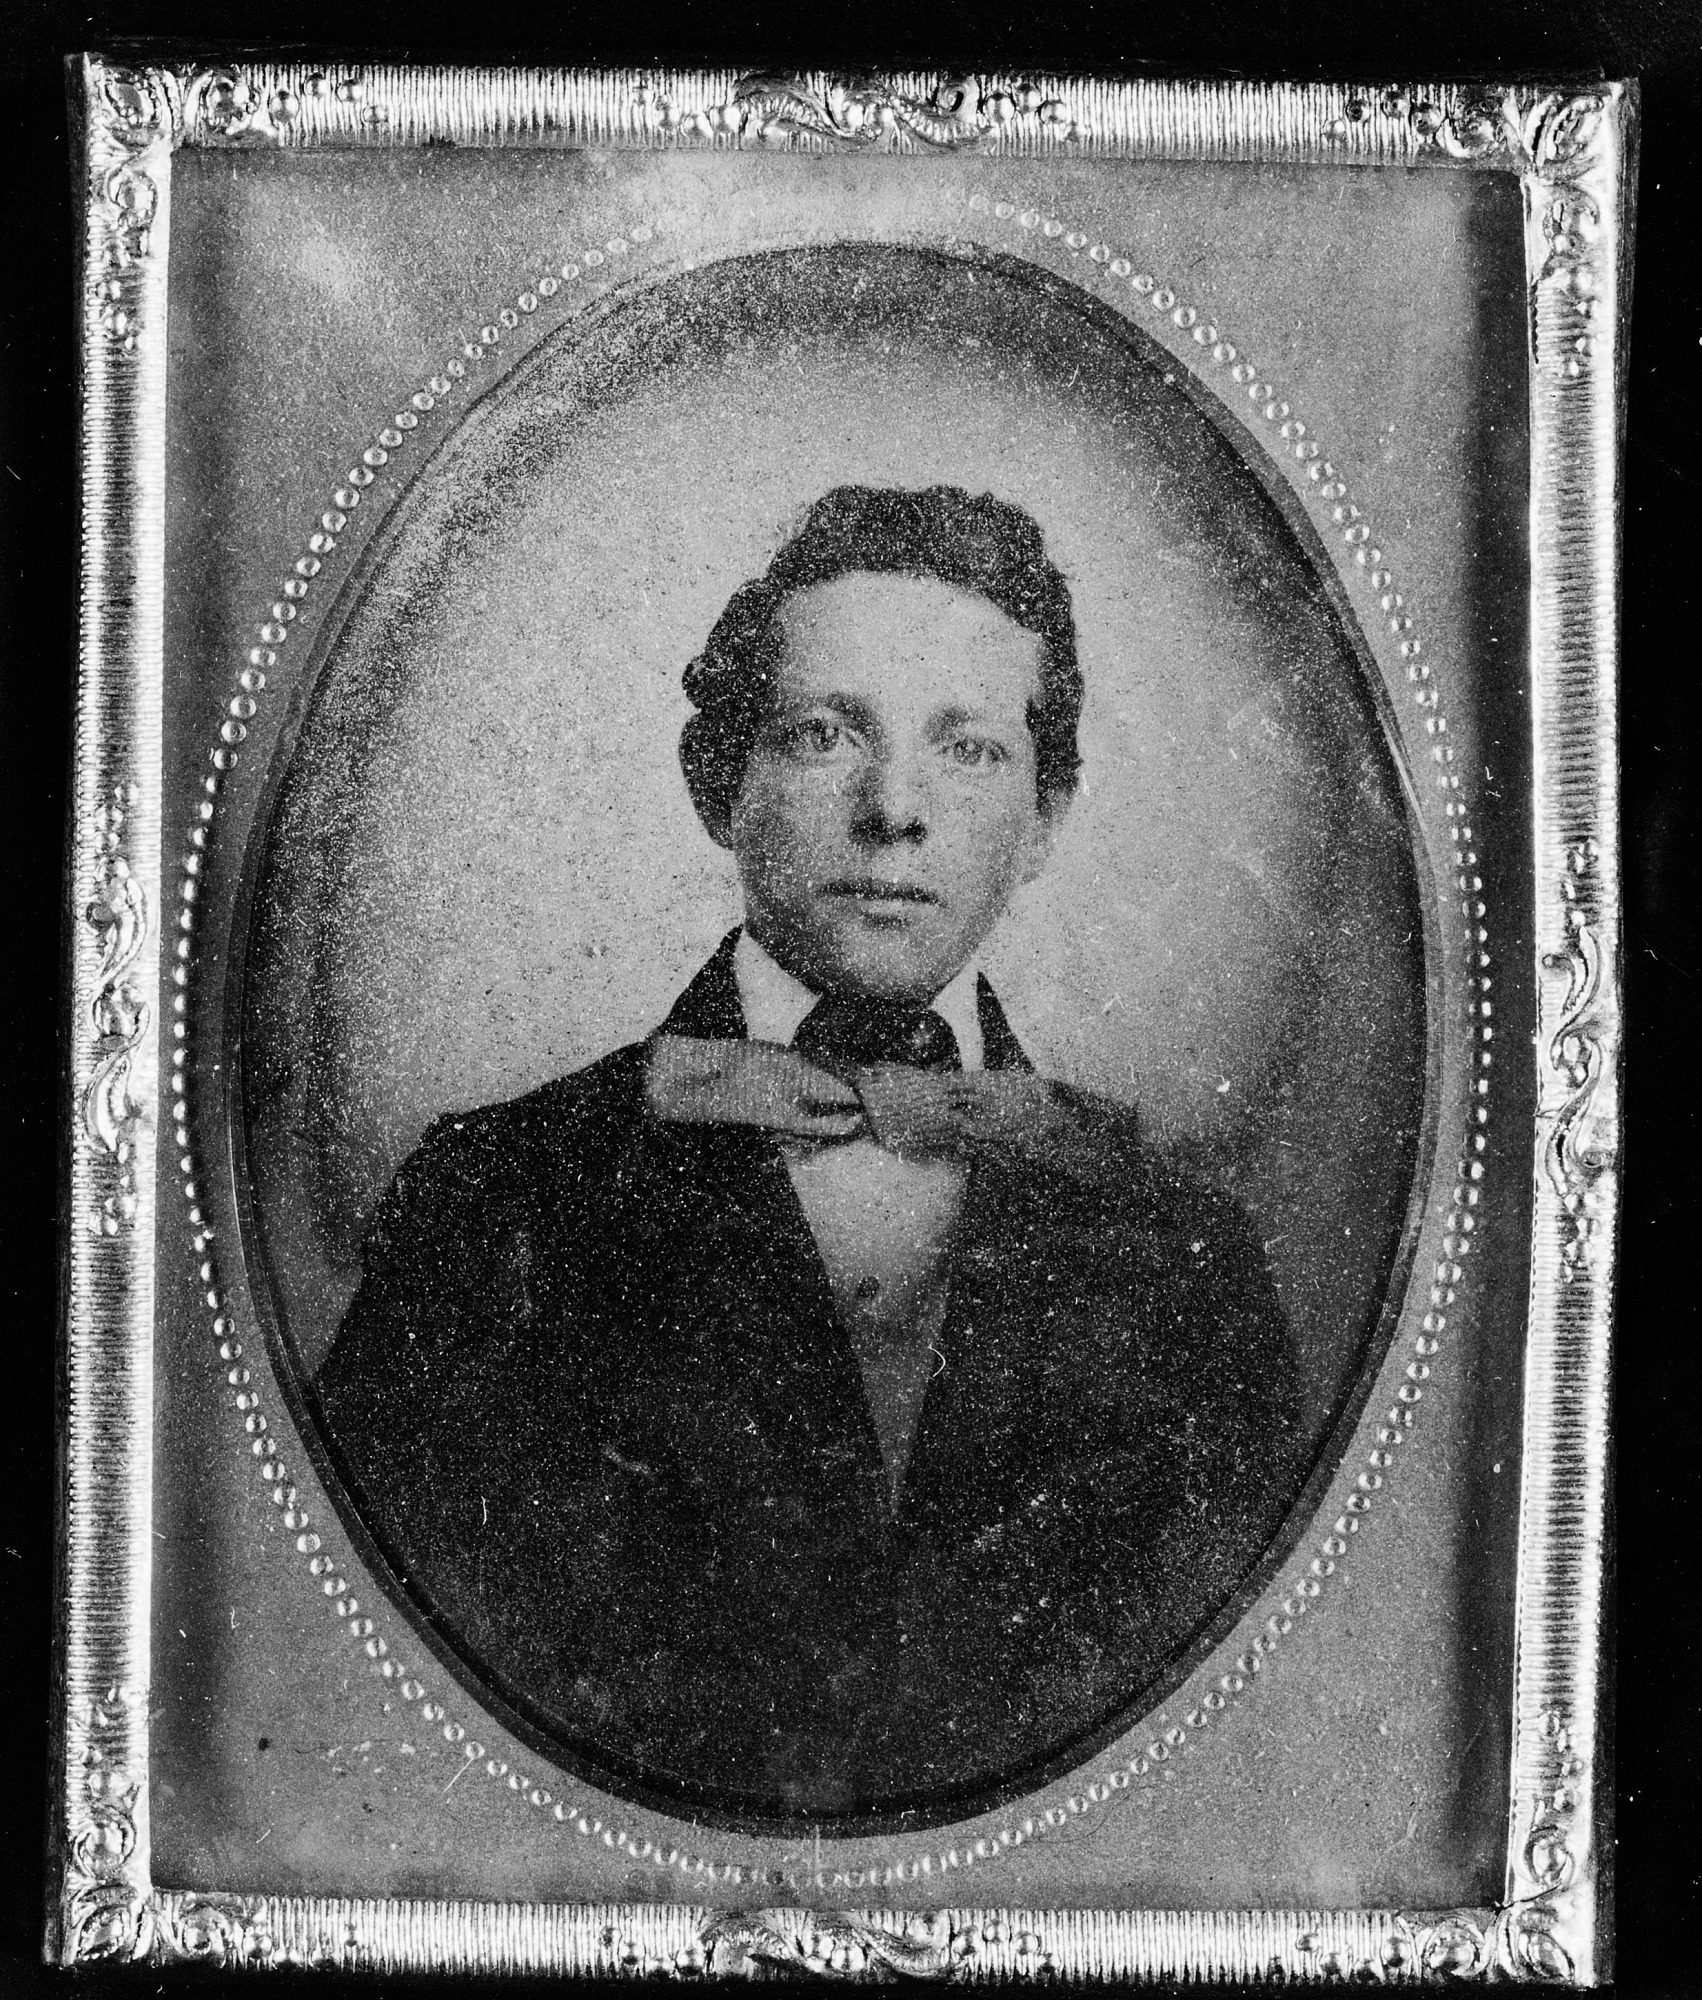 Secretary Charles D. Walcott as a Young Man